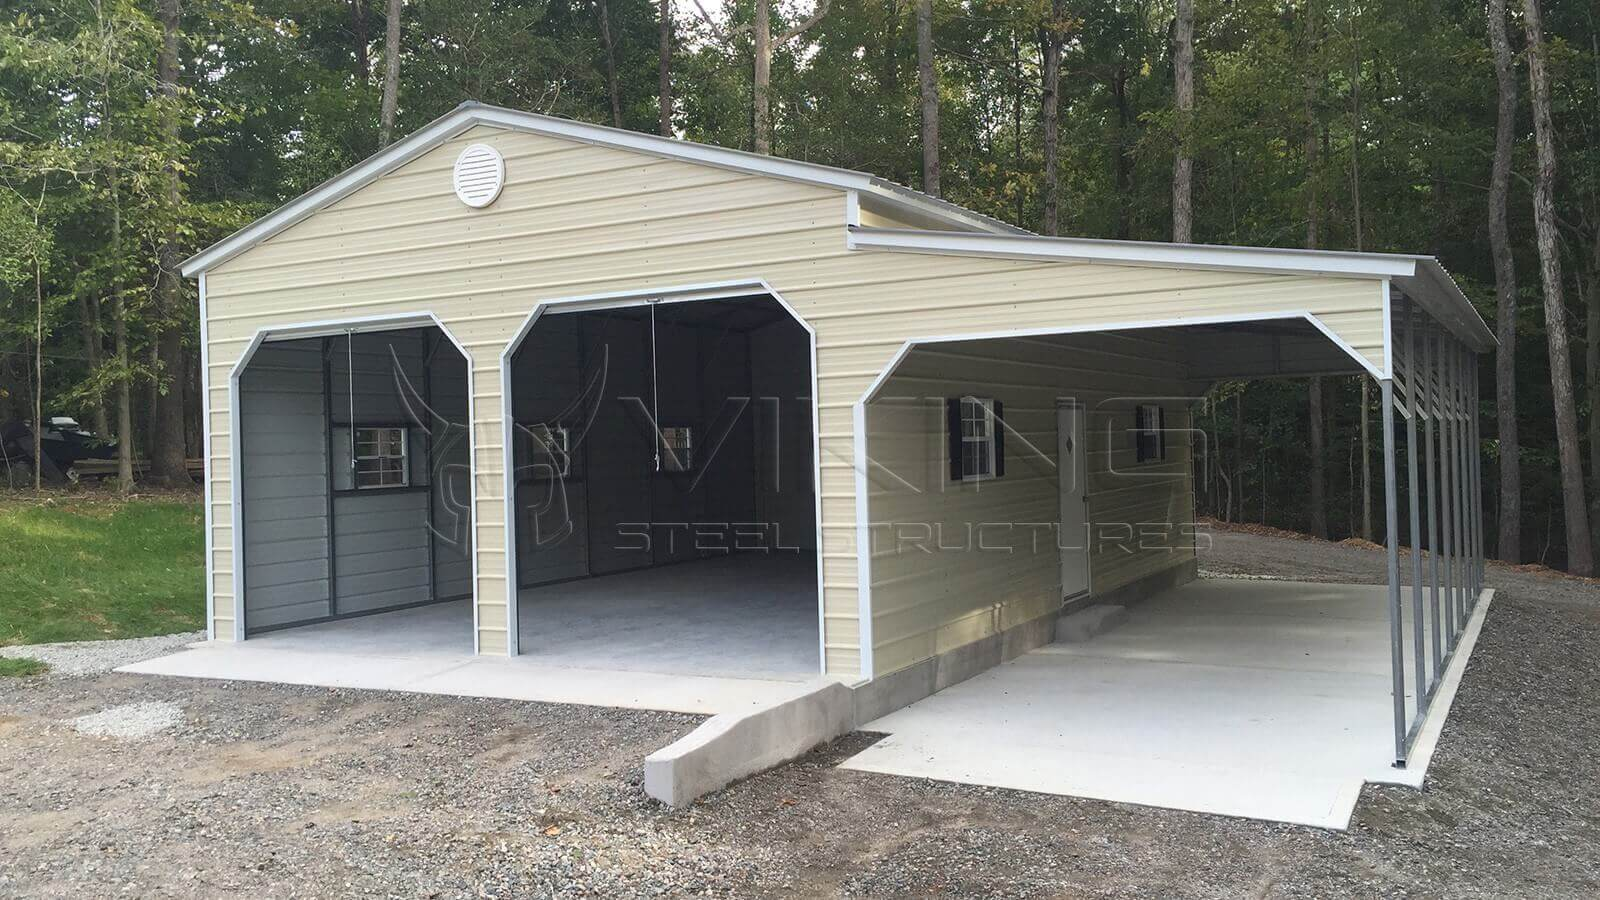 Viking steel structures metal carports barns garages for Garages and carports